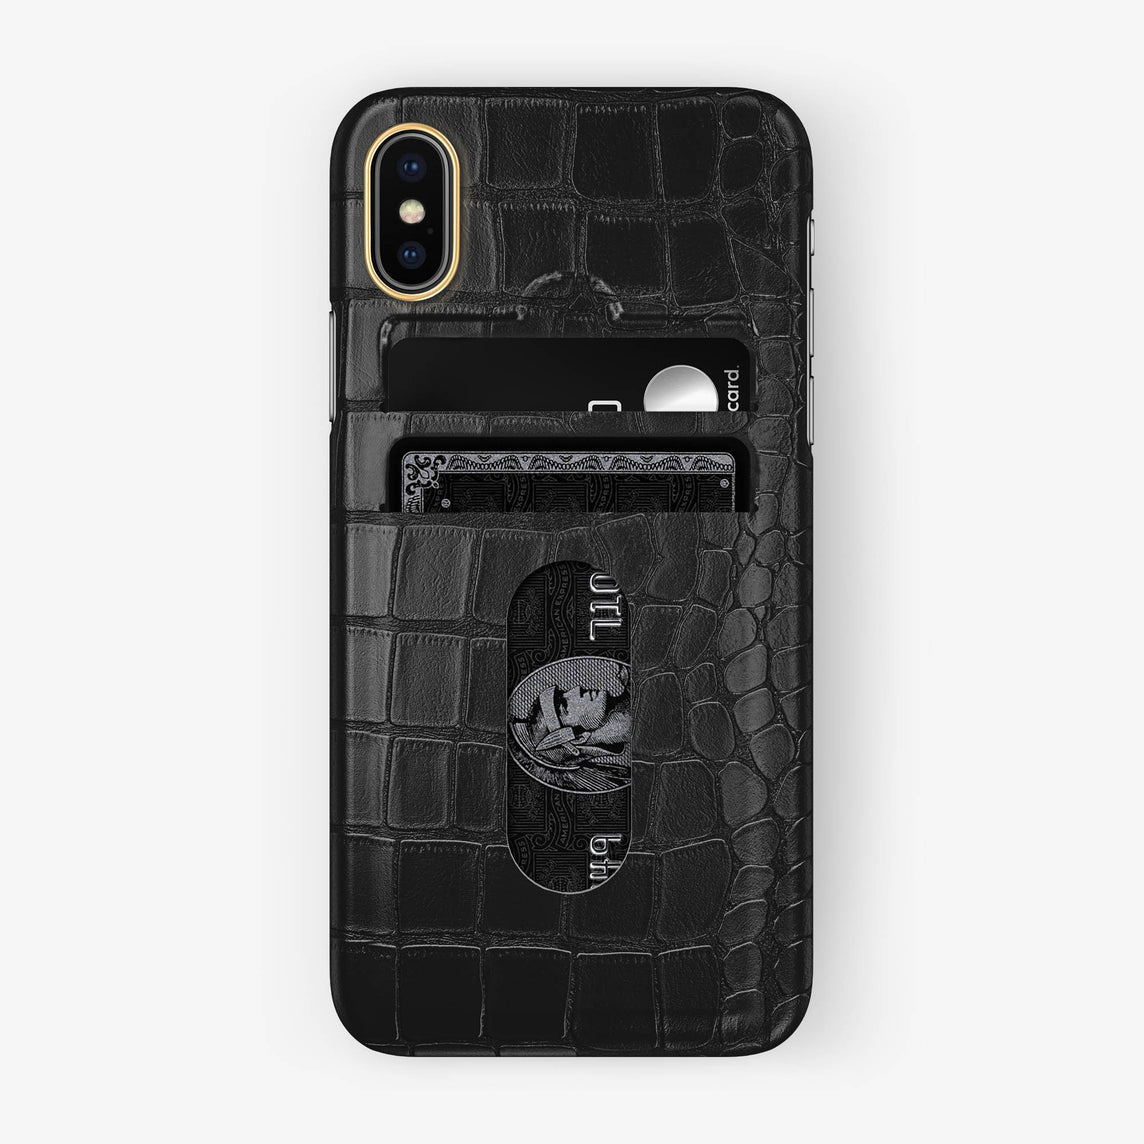 Alligator Card Holder Case iPhone X/Xs | Black - Yellow Gold with-personalization